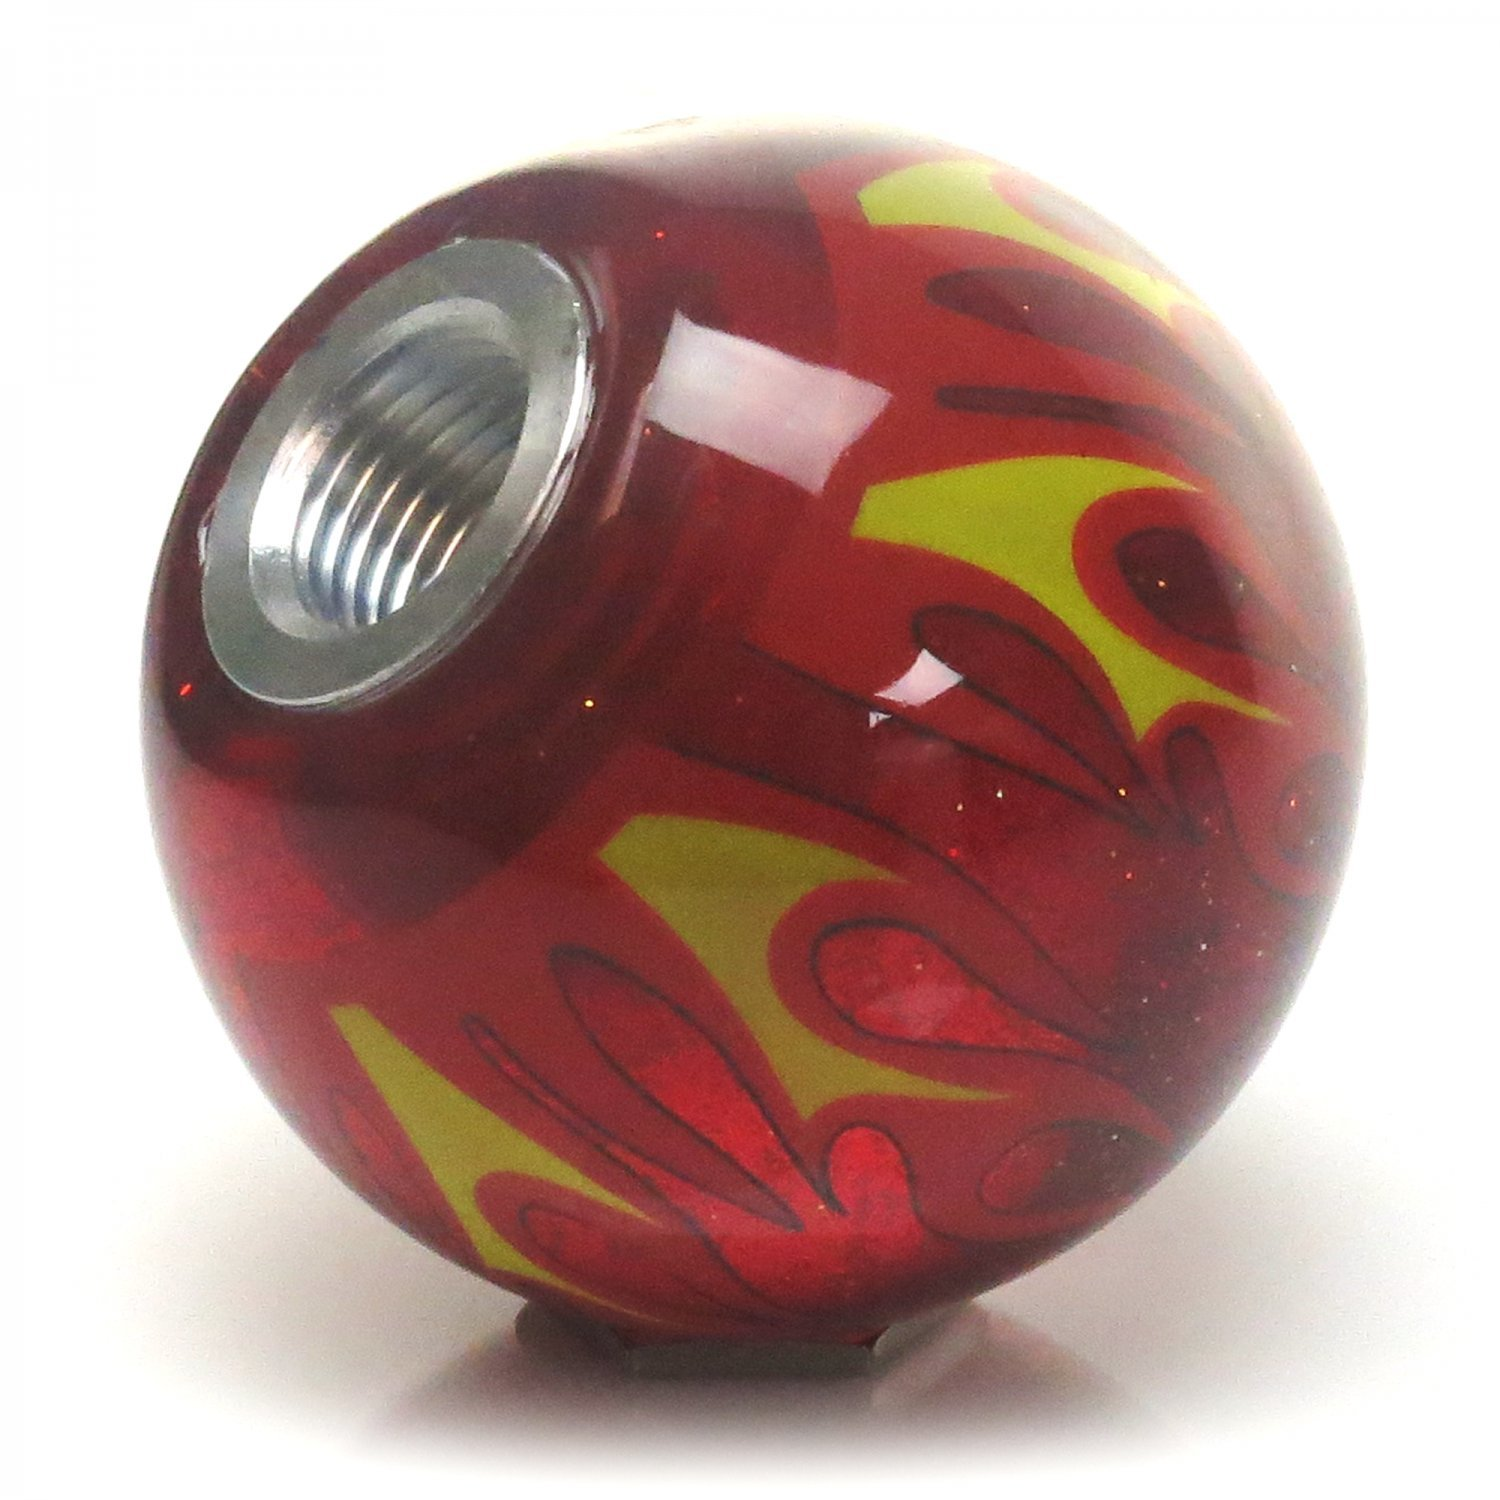 American Shifter 241232 Red Flame Metal Flake Shift Knob with M16 x 1.5 Insert Green Force or Fleet Command